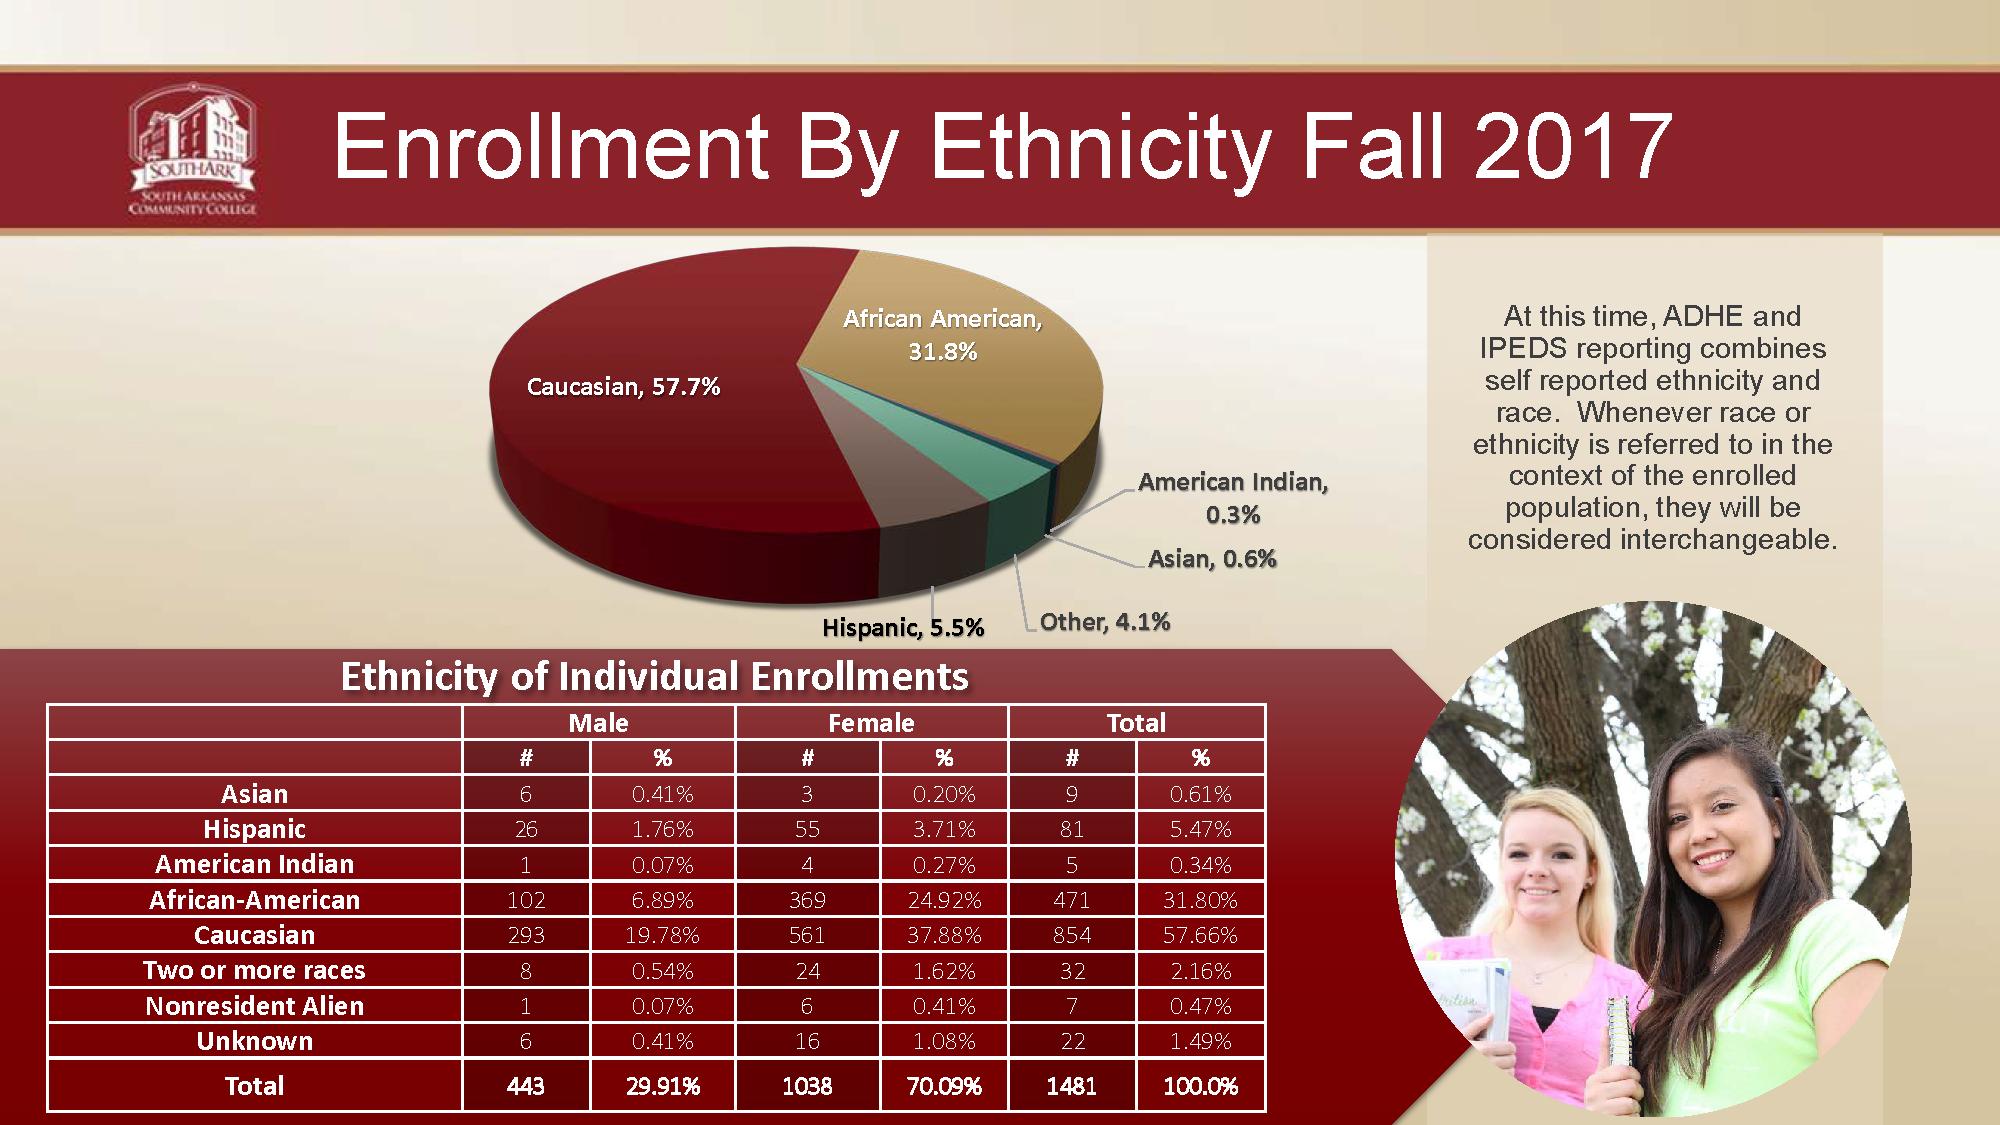 Enrollment by Ethnicity 2017